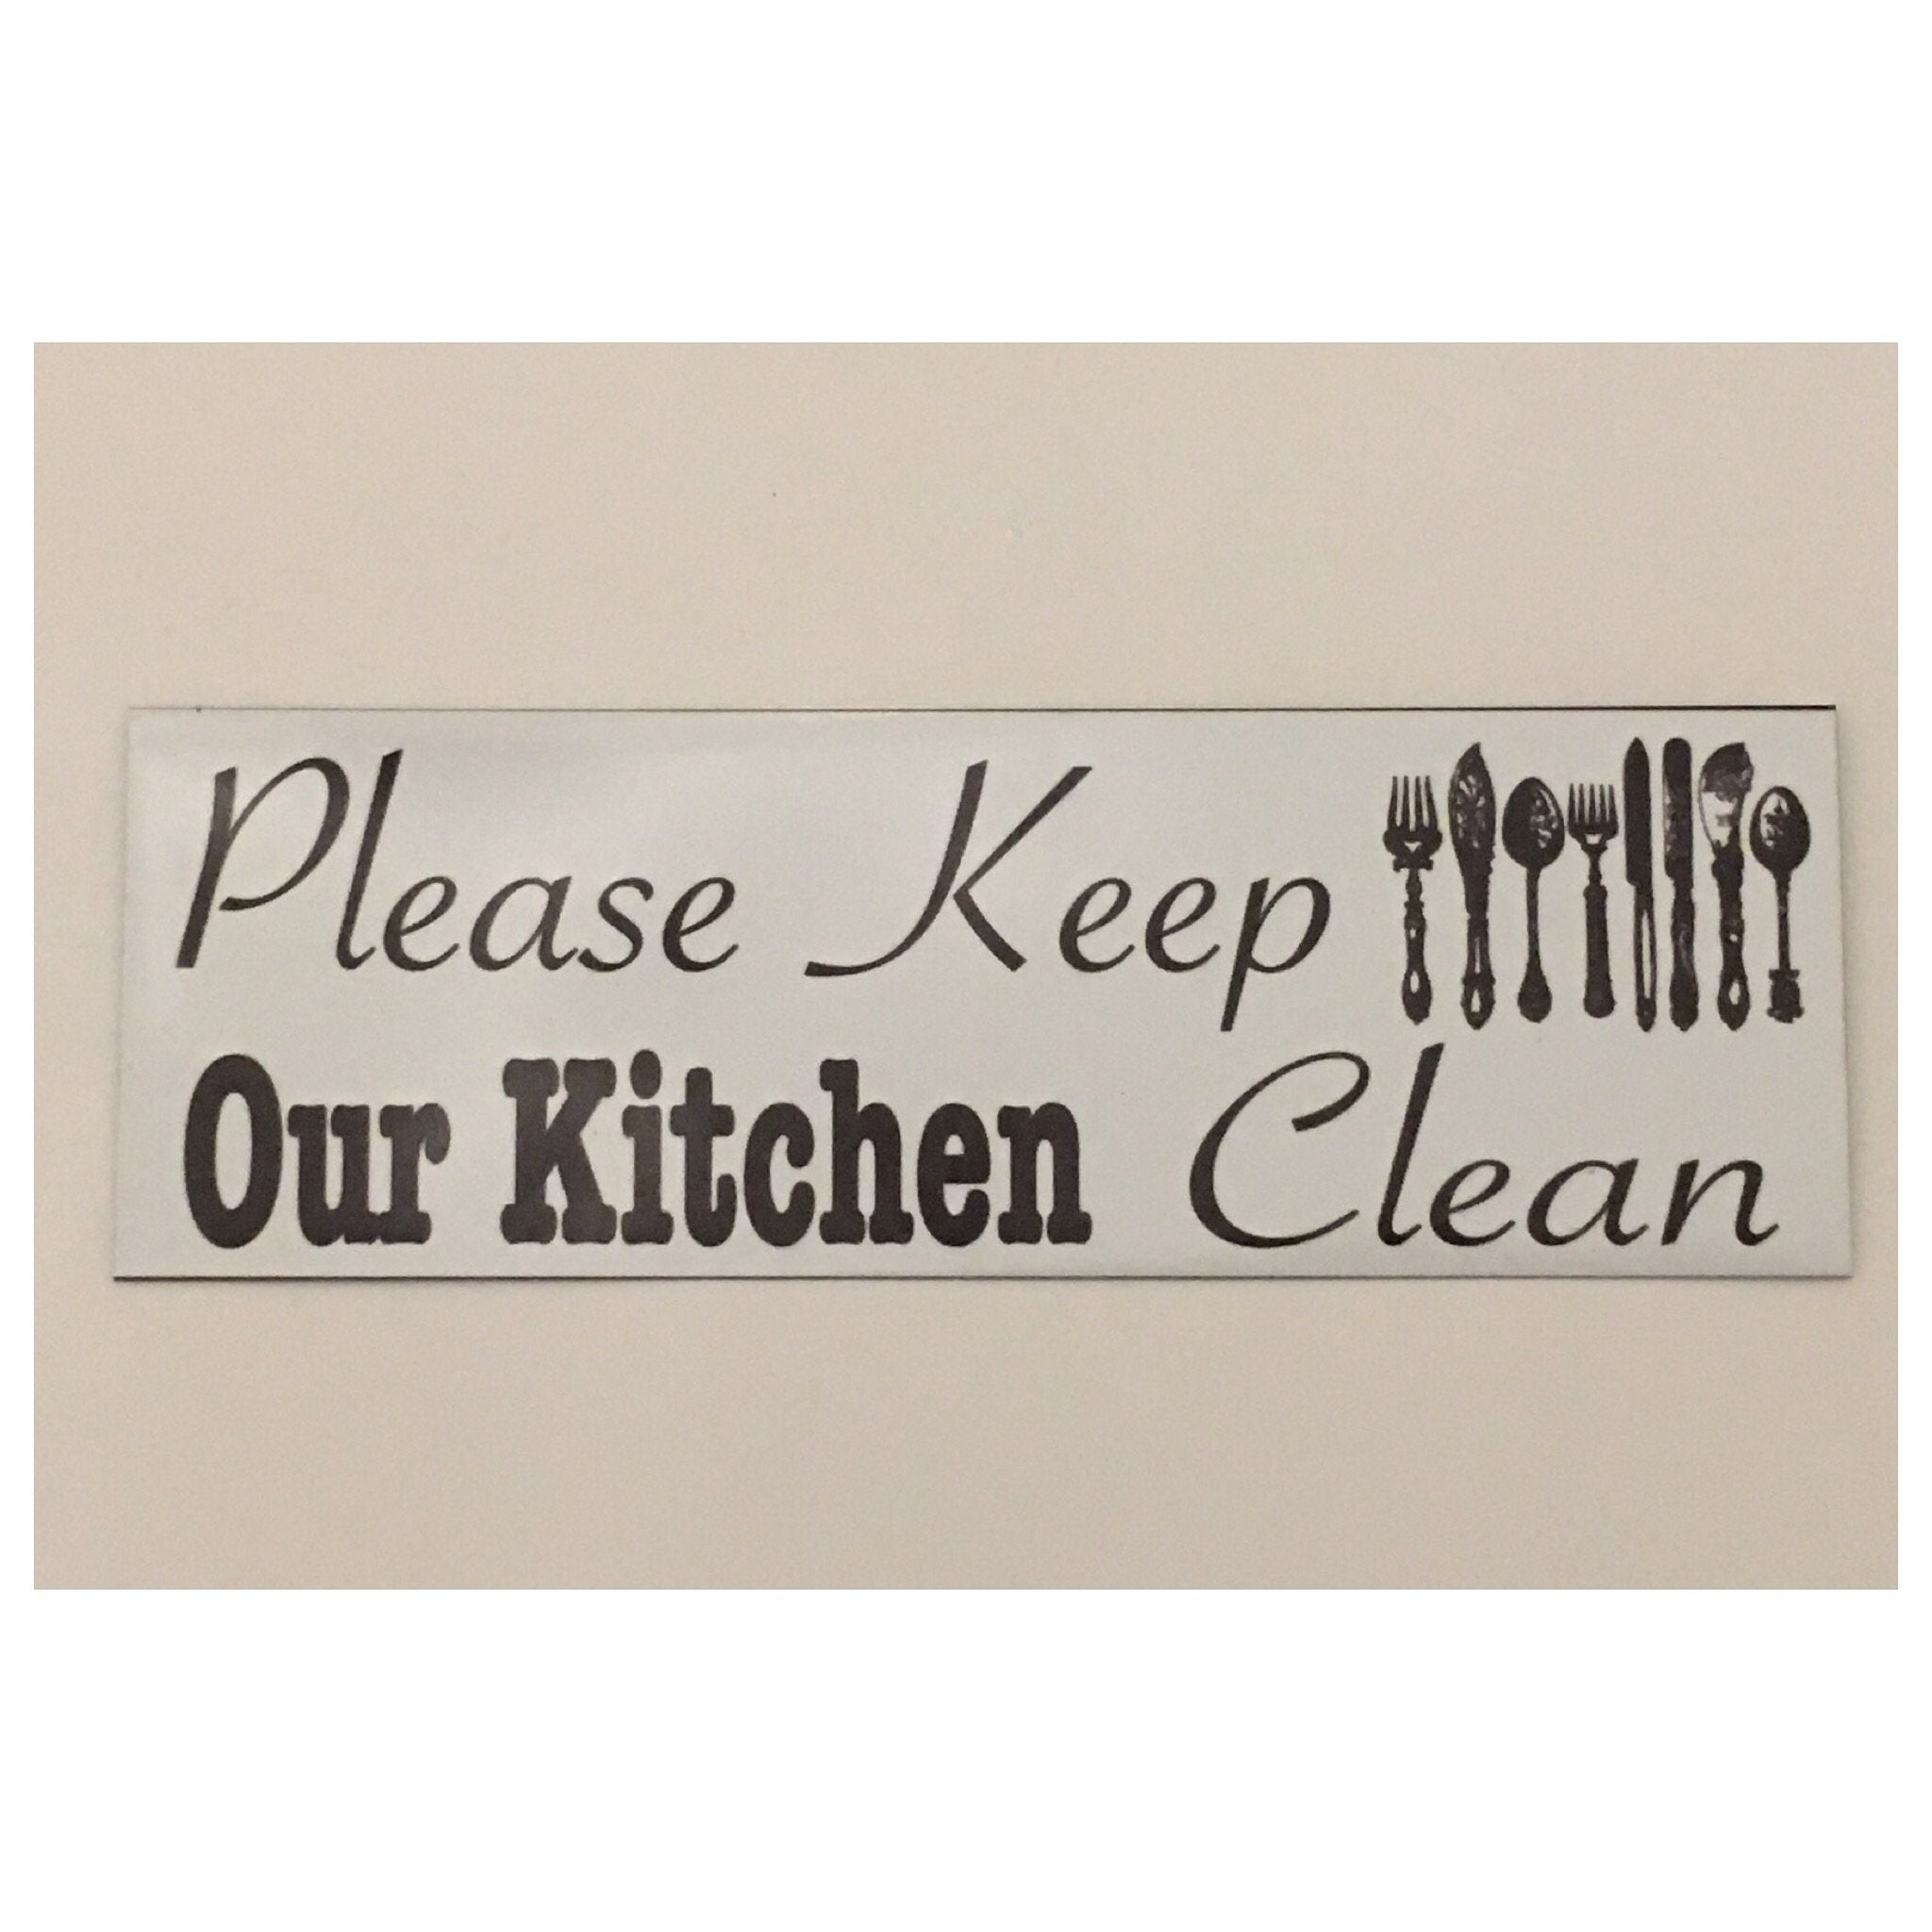 Please Keep Our Kitchen Clean Sign